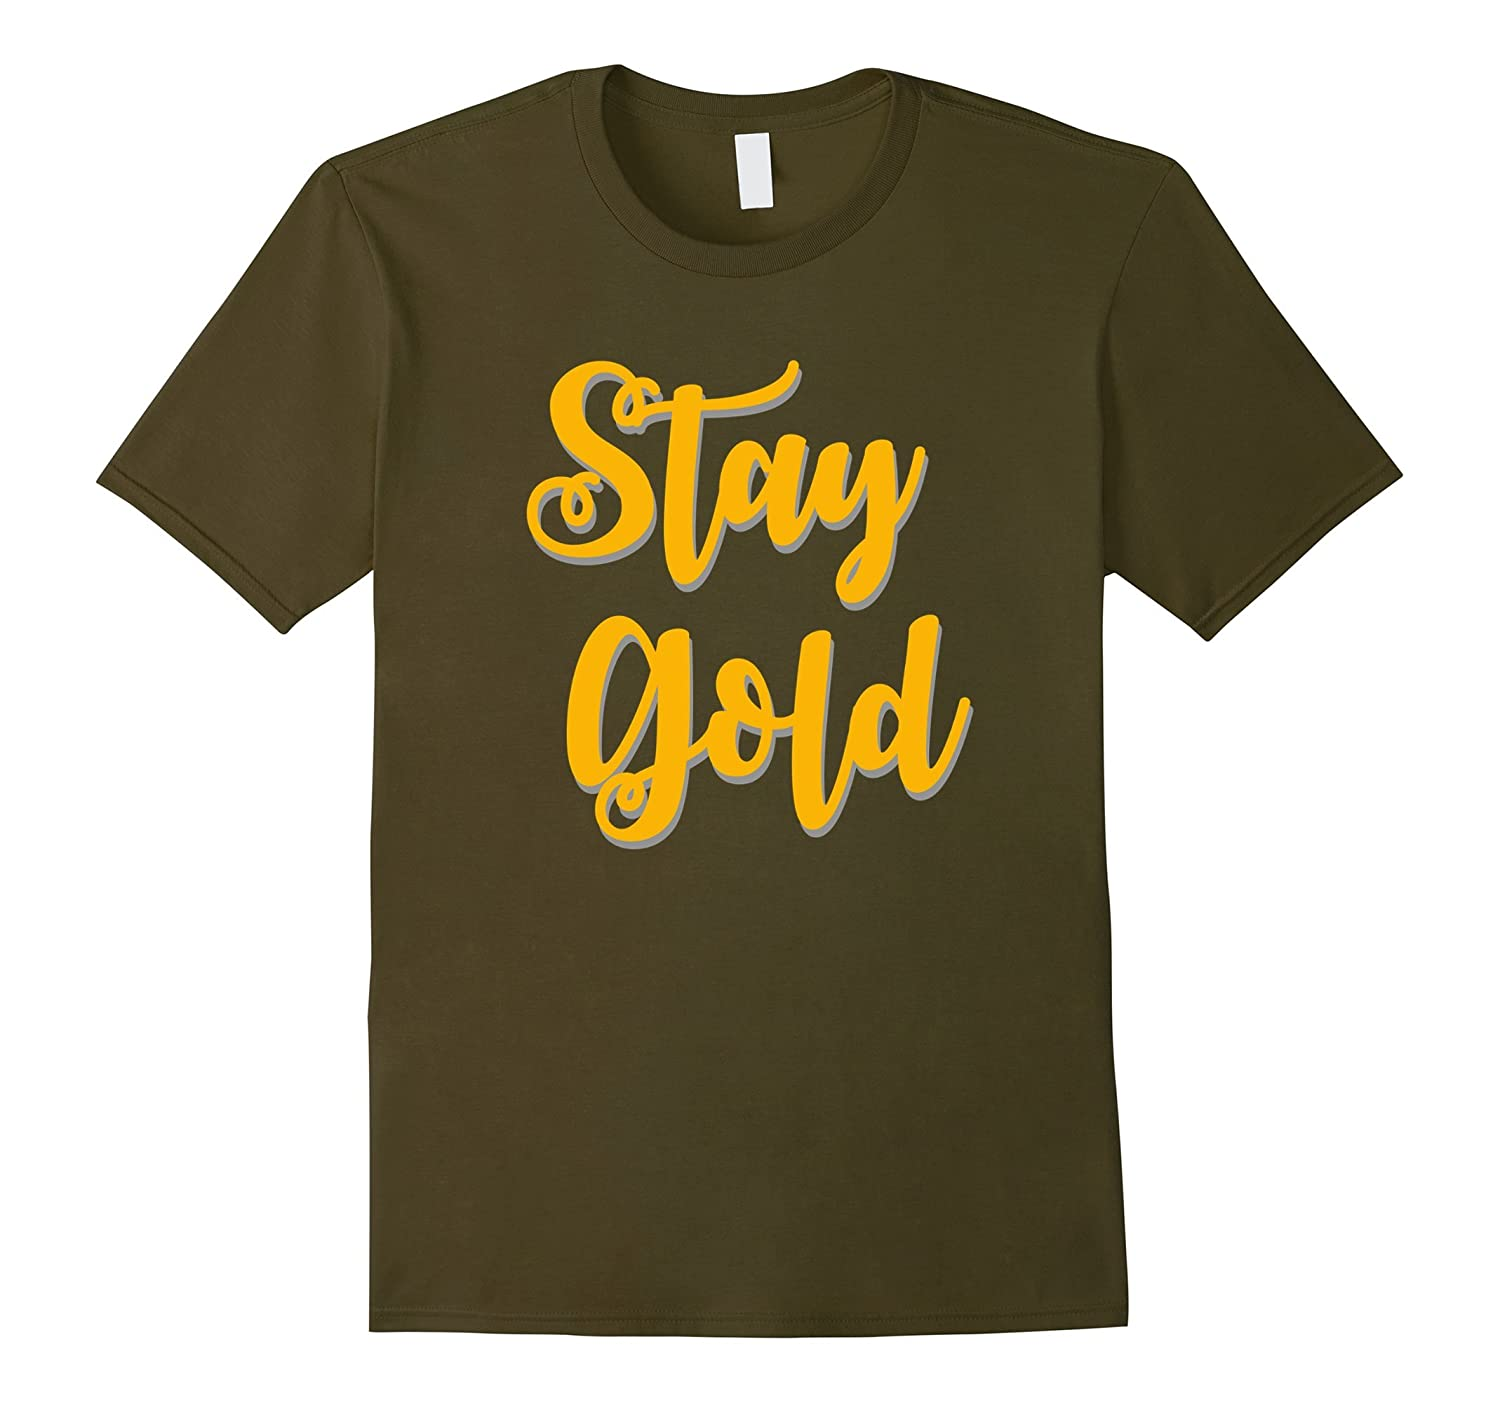 Stay Gold positive message tee t-shirt-TJ